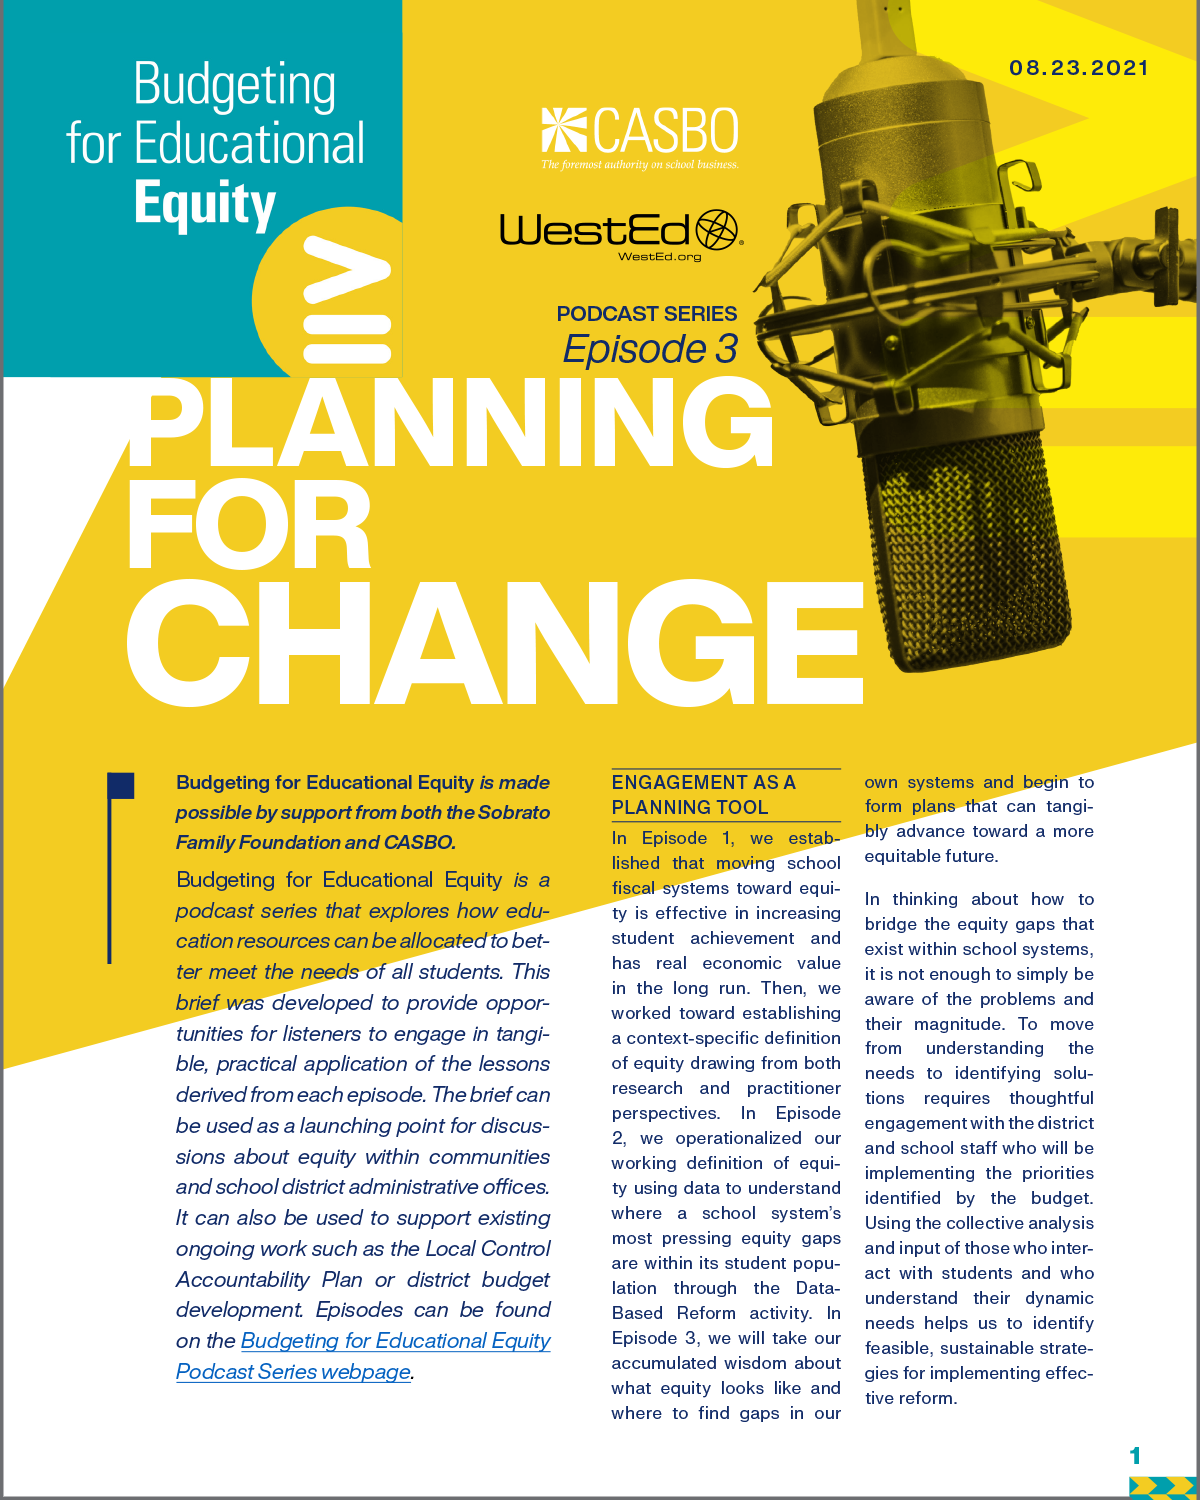 Podcast Series, Episode 3: Planning for Change